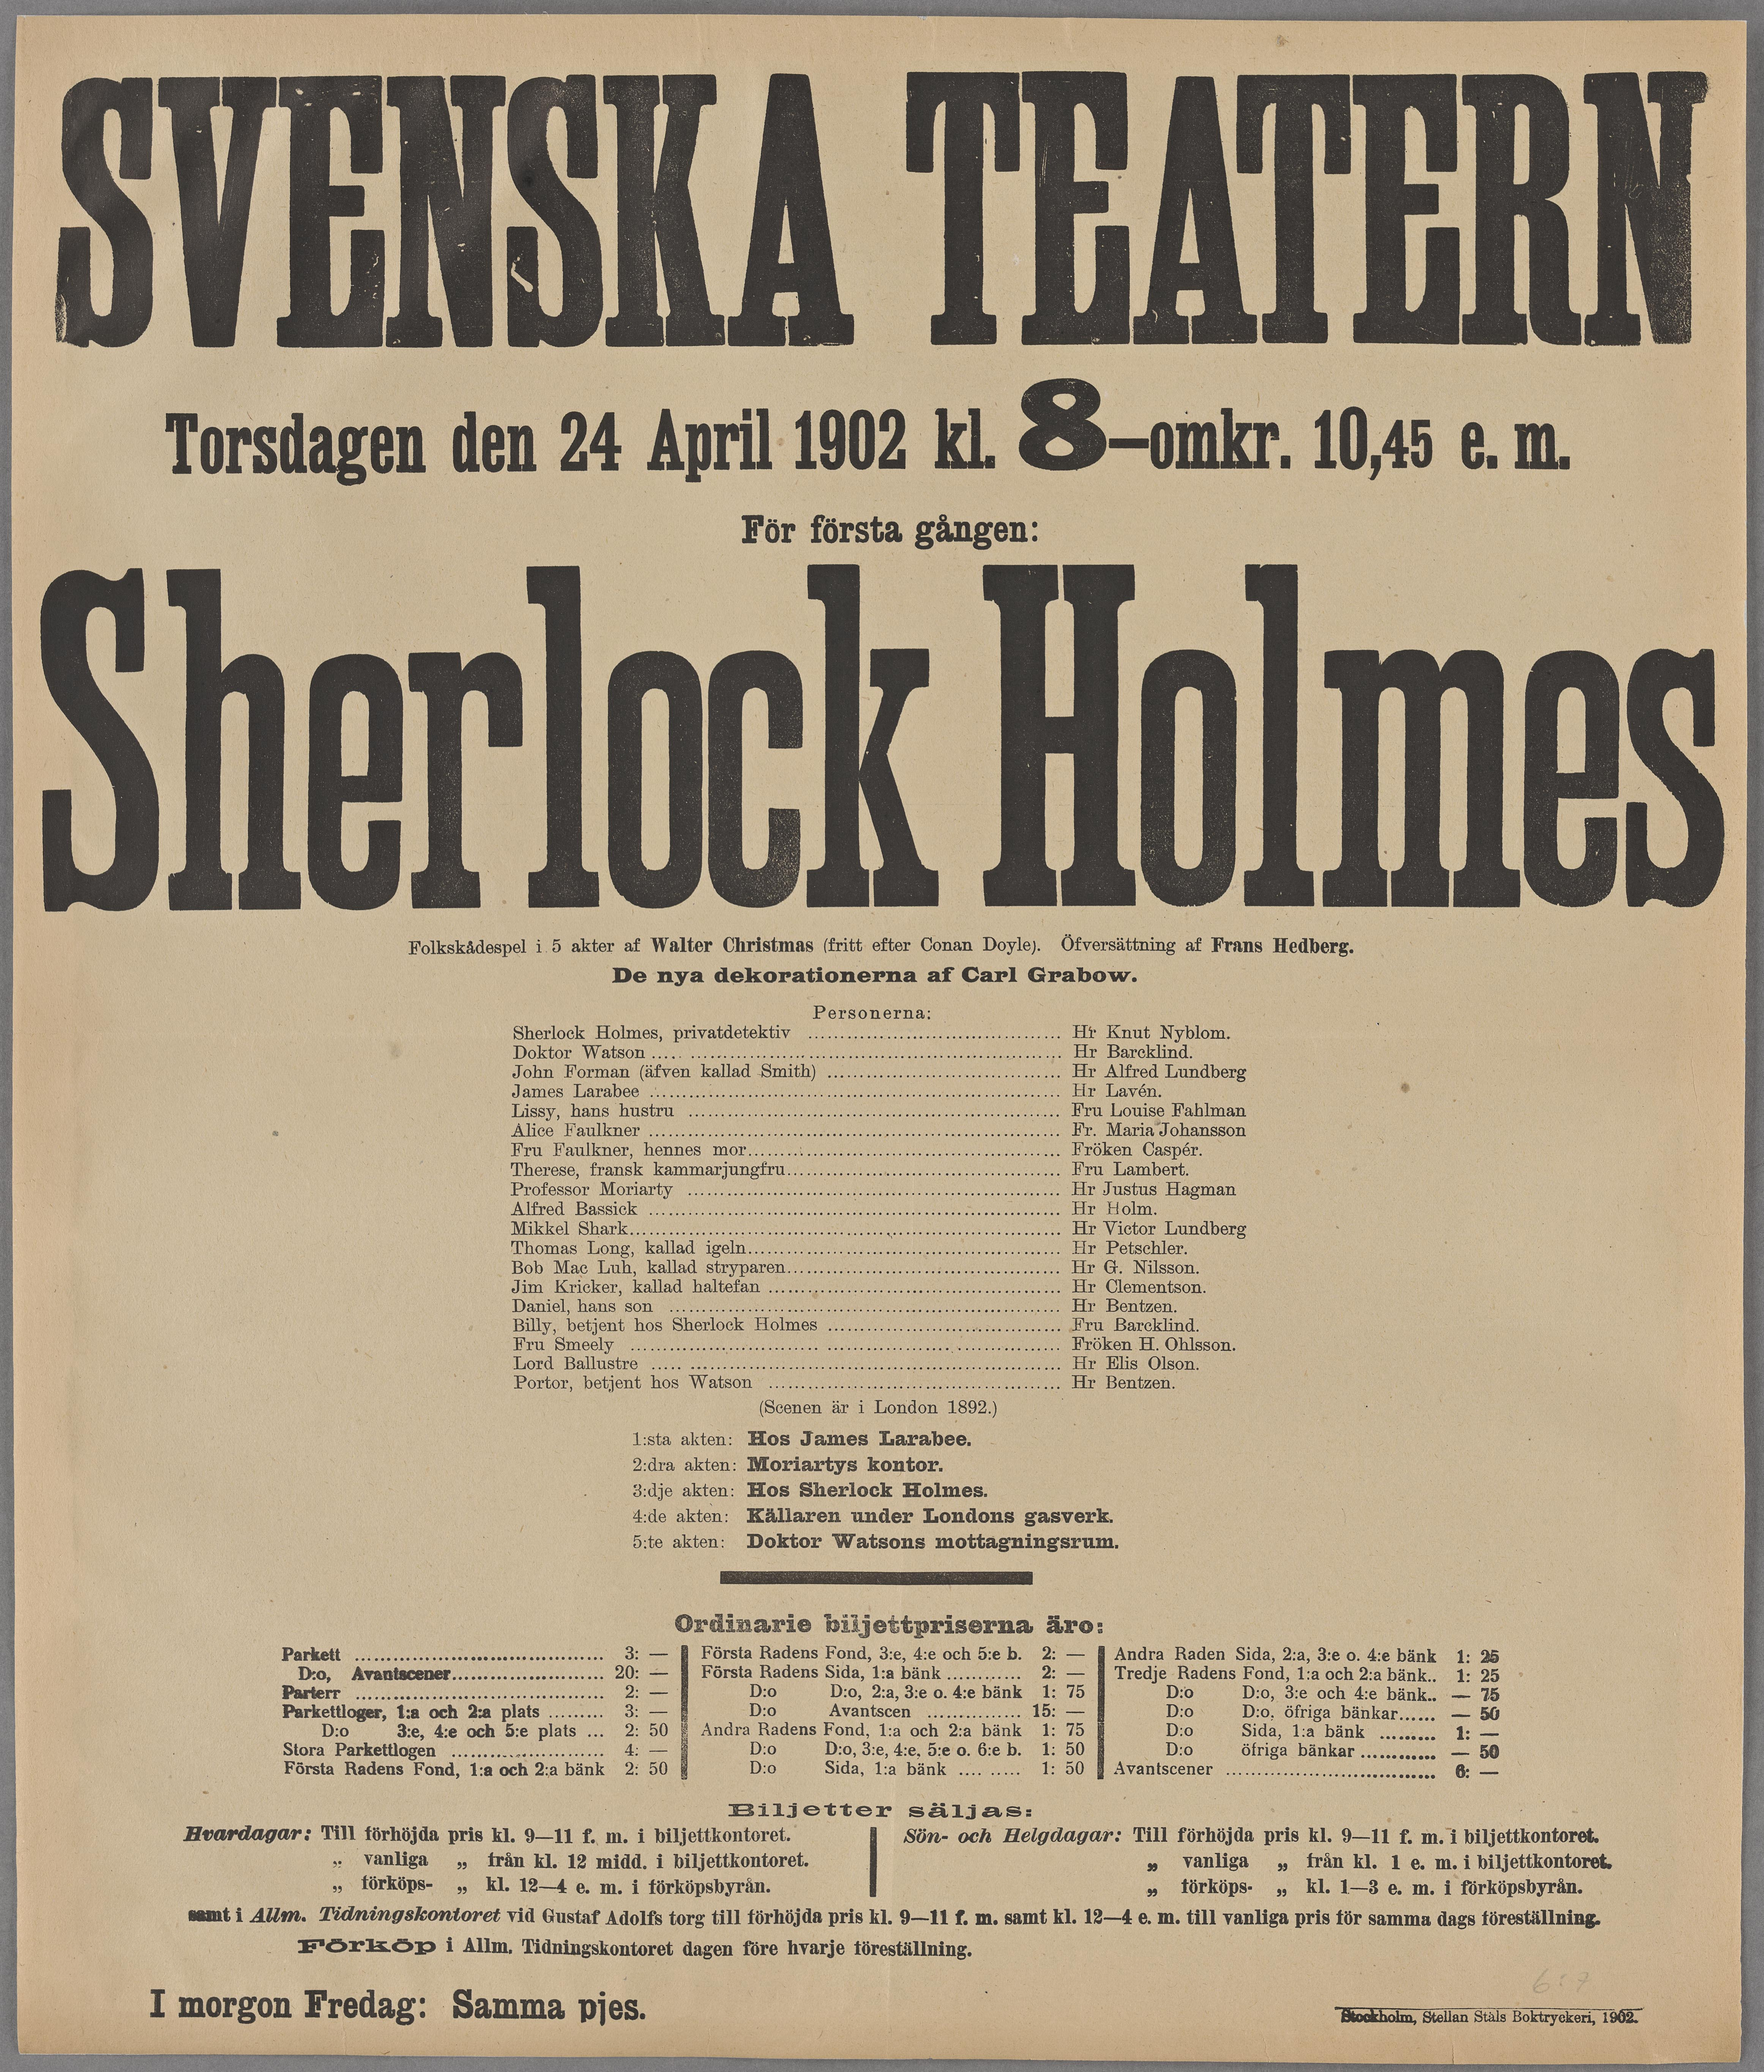 Teaterprogram för Svenska Teatern 24 april 1902